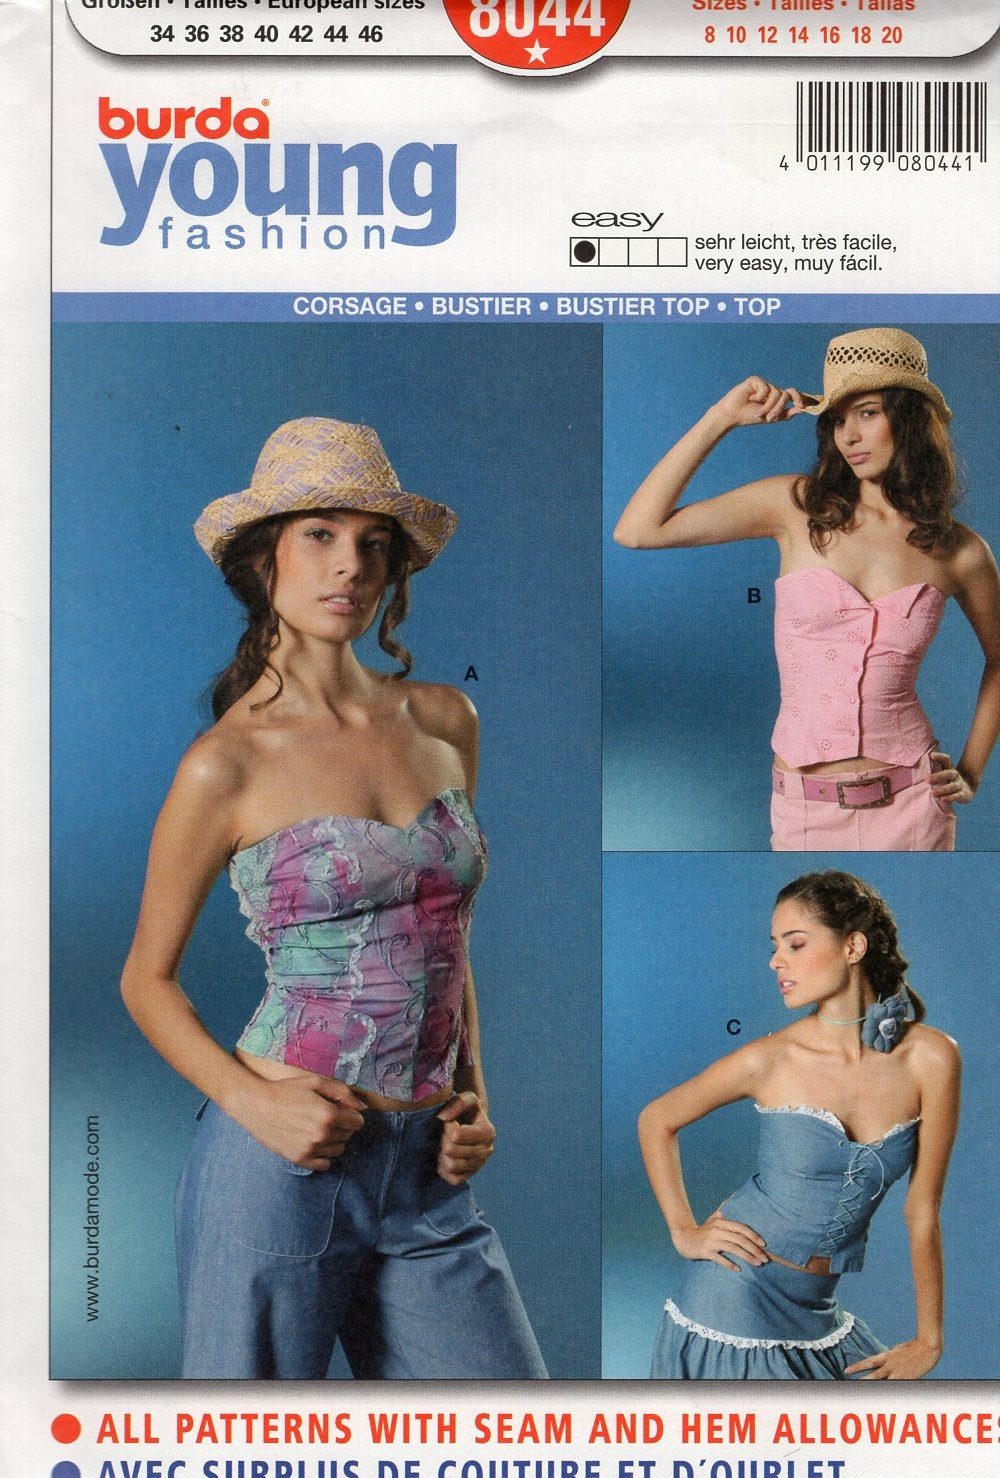 Free us ship burda 8044 young fashion sexy corset bustier top free us ship burda 8044 young fashion sexy corset bustier top sweetheart neckline strapless sewing pattern plus size 8 10 12 14 16 18 20 jeuxipadfo Gallery